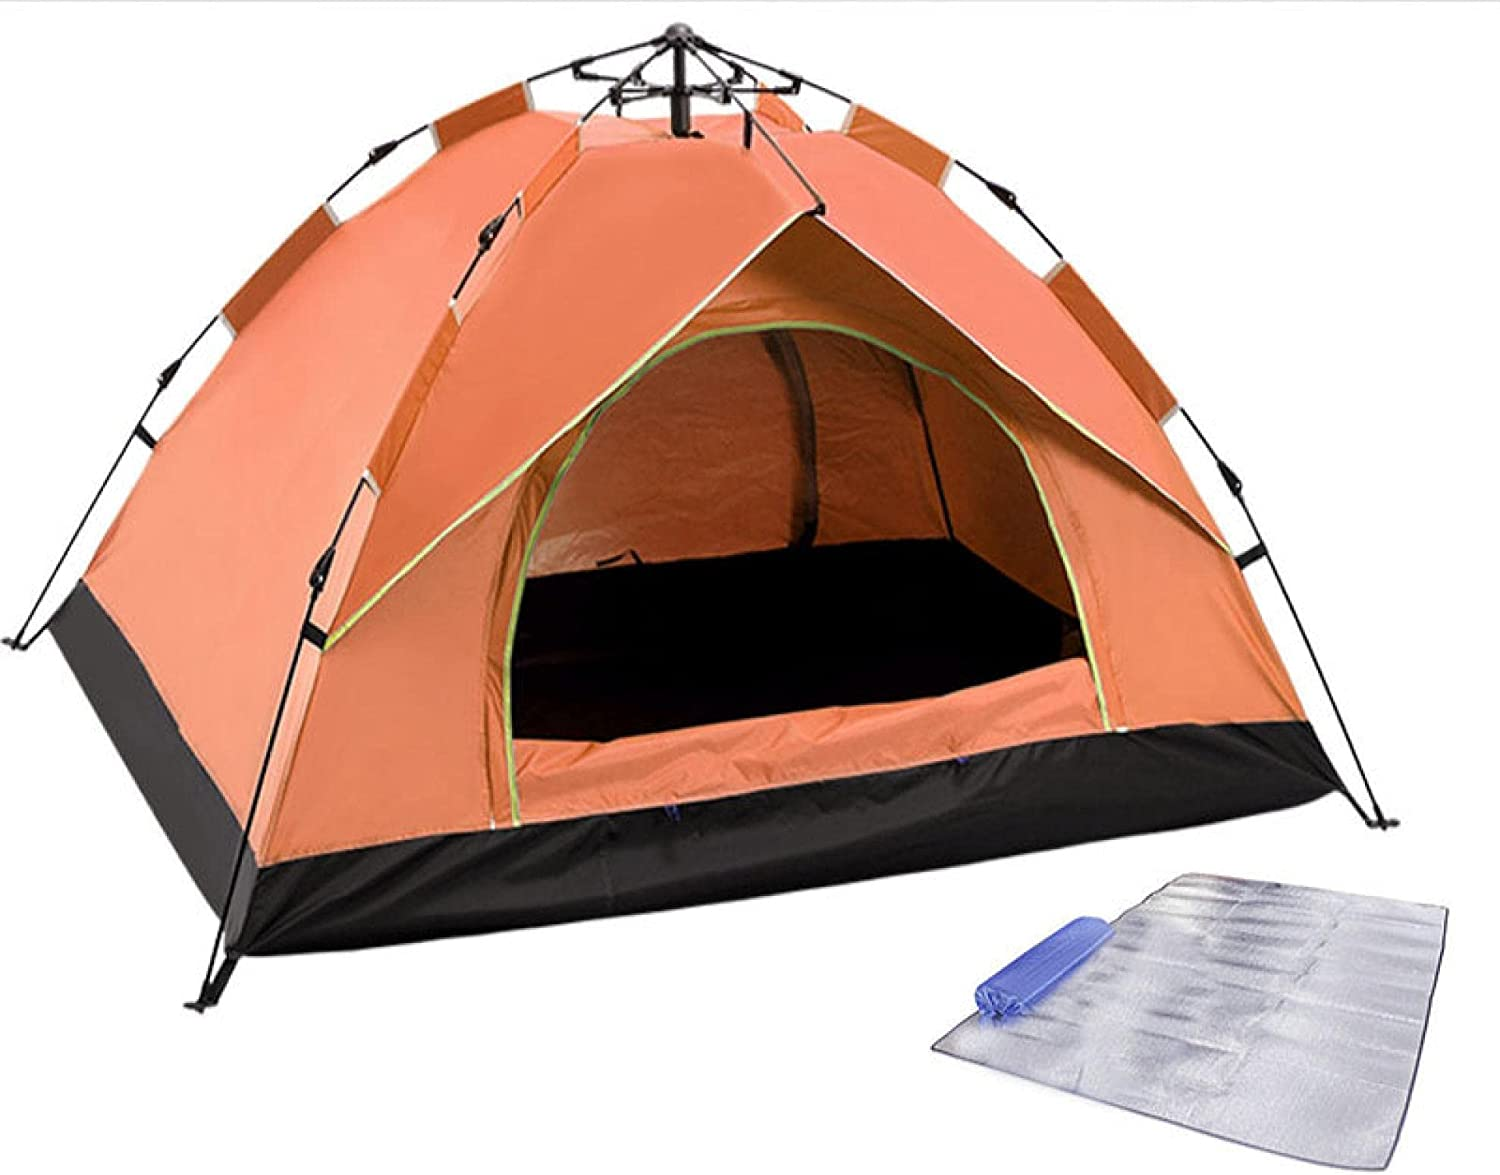 """""""N A"""" Fully Automatic Outdoor People Spr 2-3-4 Atlanta Mall Tent Price reduction Camping"""